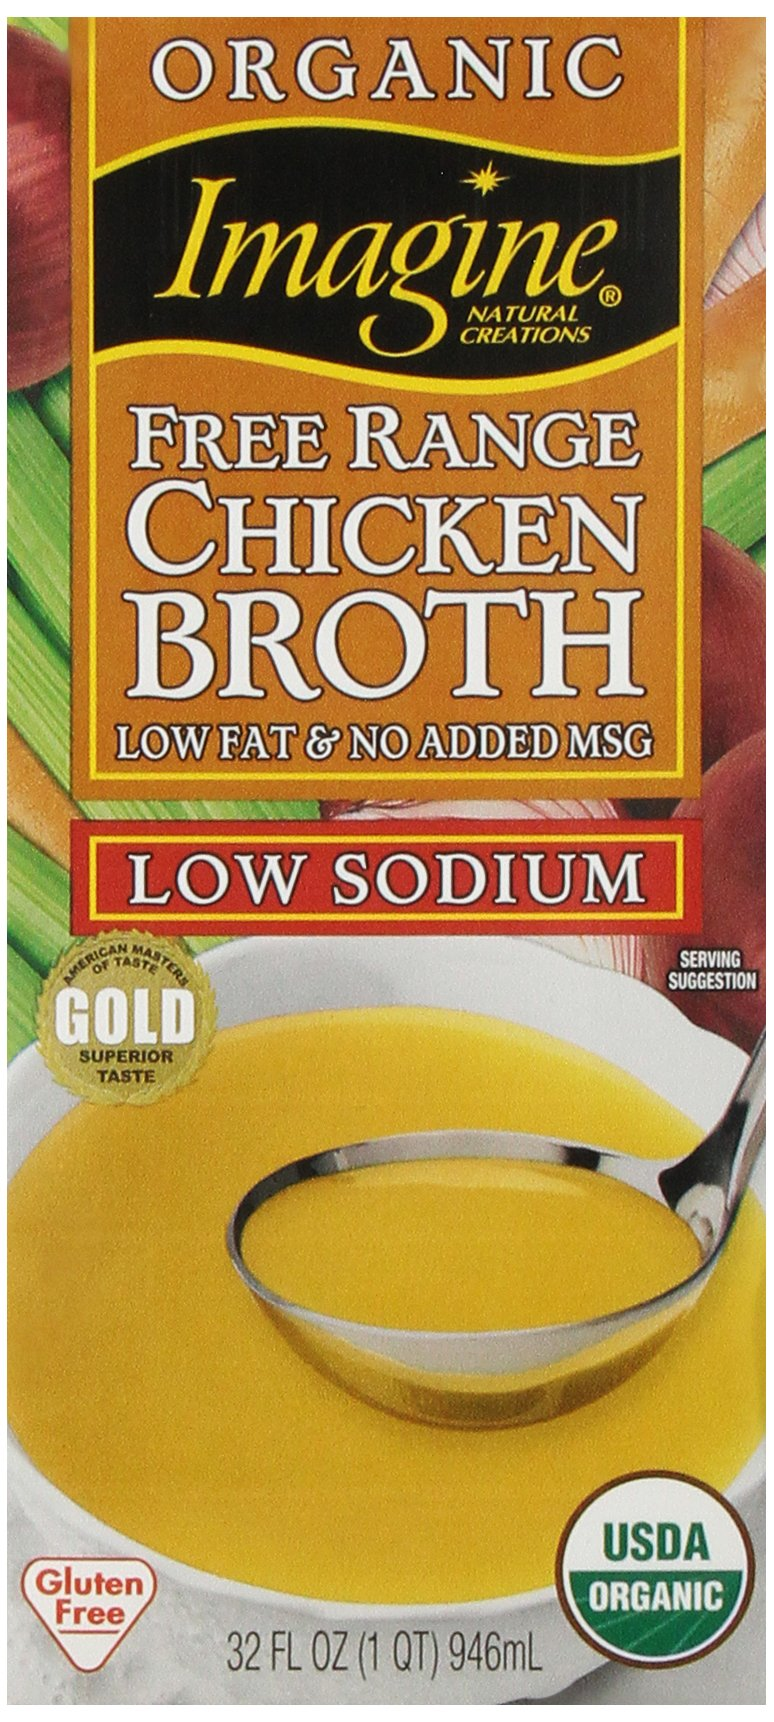 Imagine Free Range Chicken Broth, Organic, Low Sodium, 32 oz